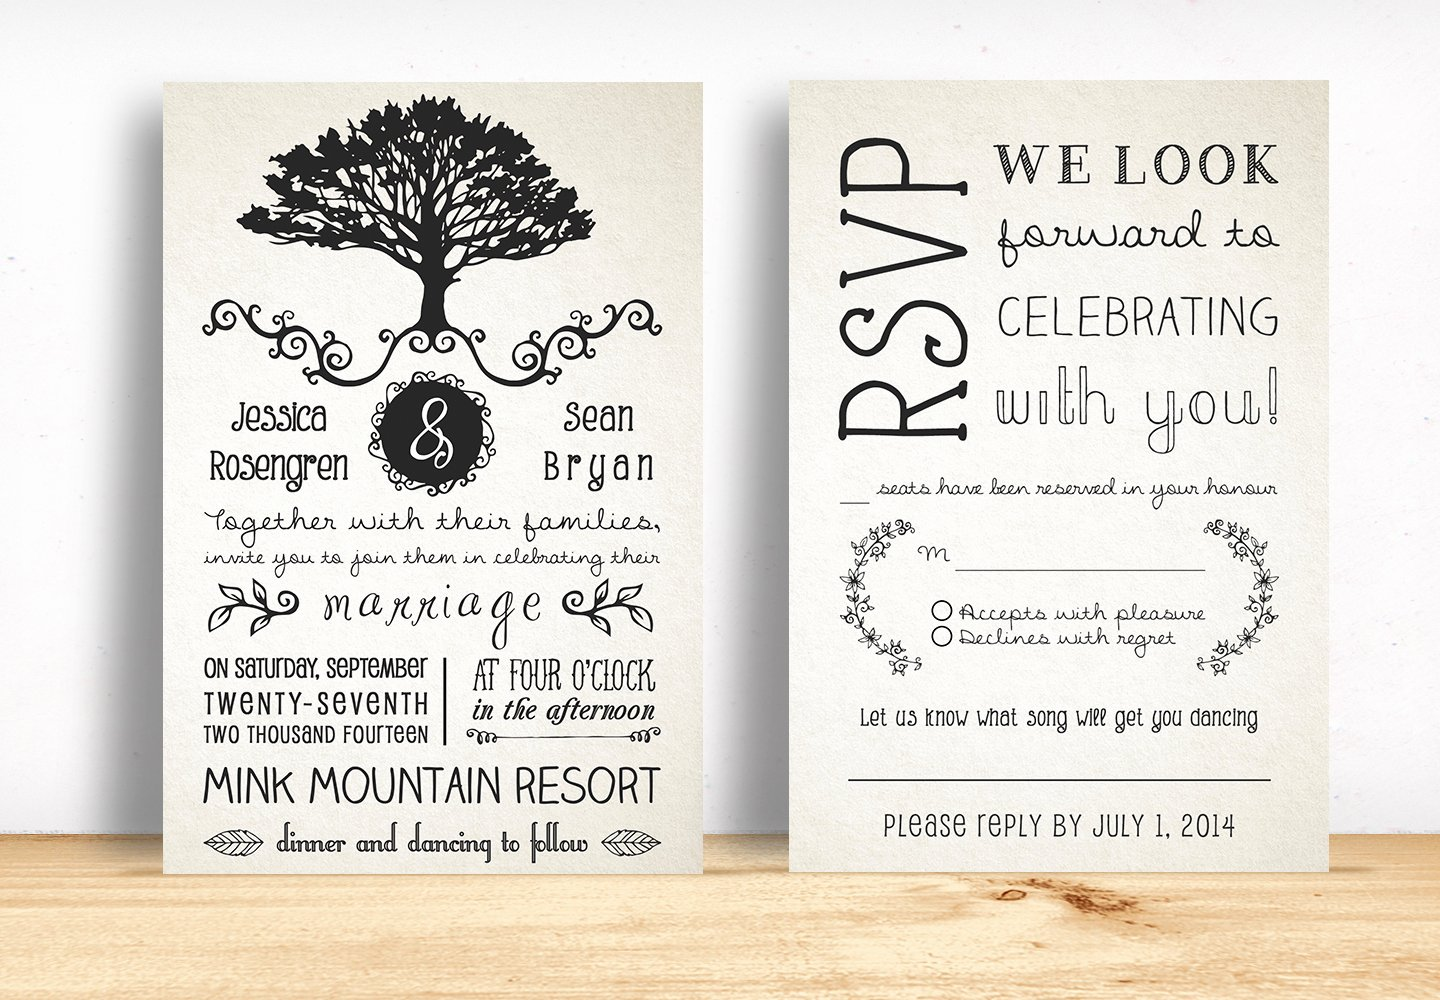 Country Wedding Invitations Templates Free Awesome Rustic Wedding Invitation Pack Invitation Templates On Creative Market